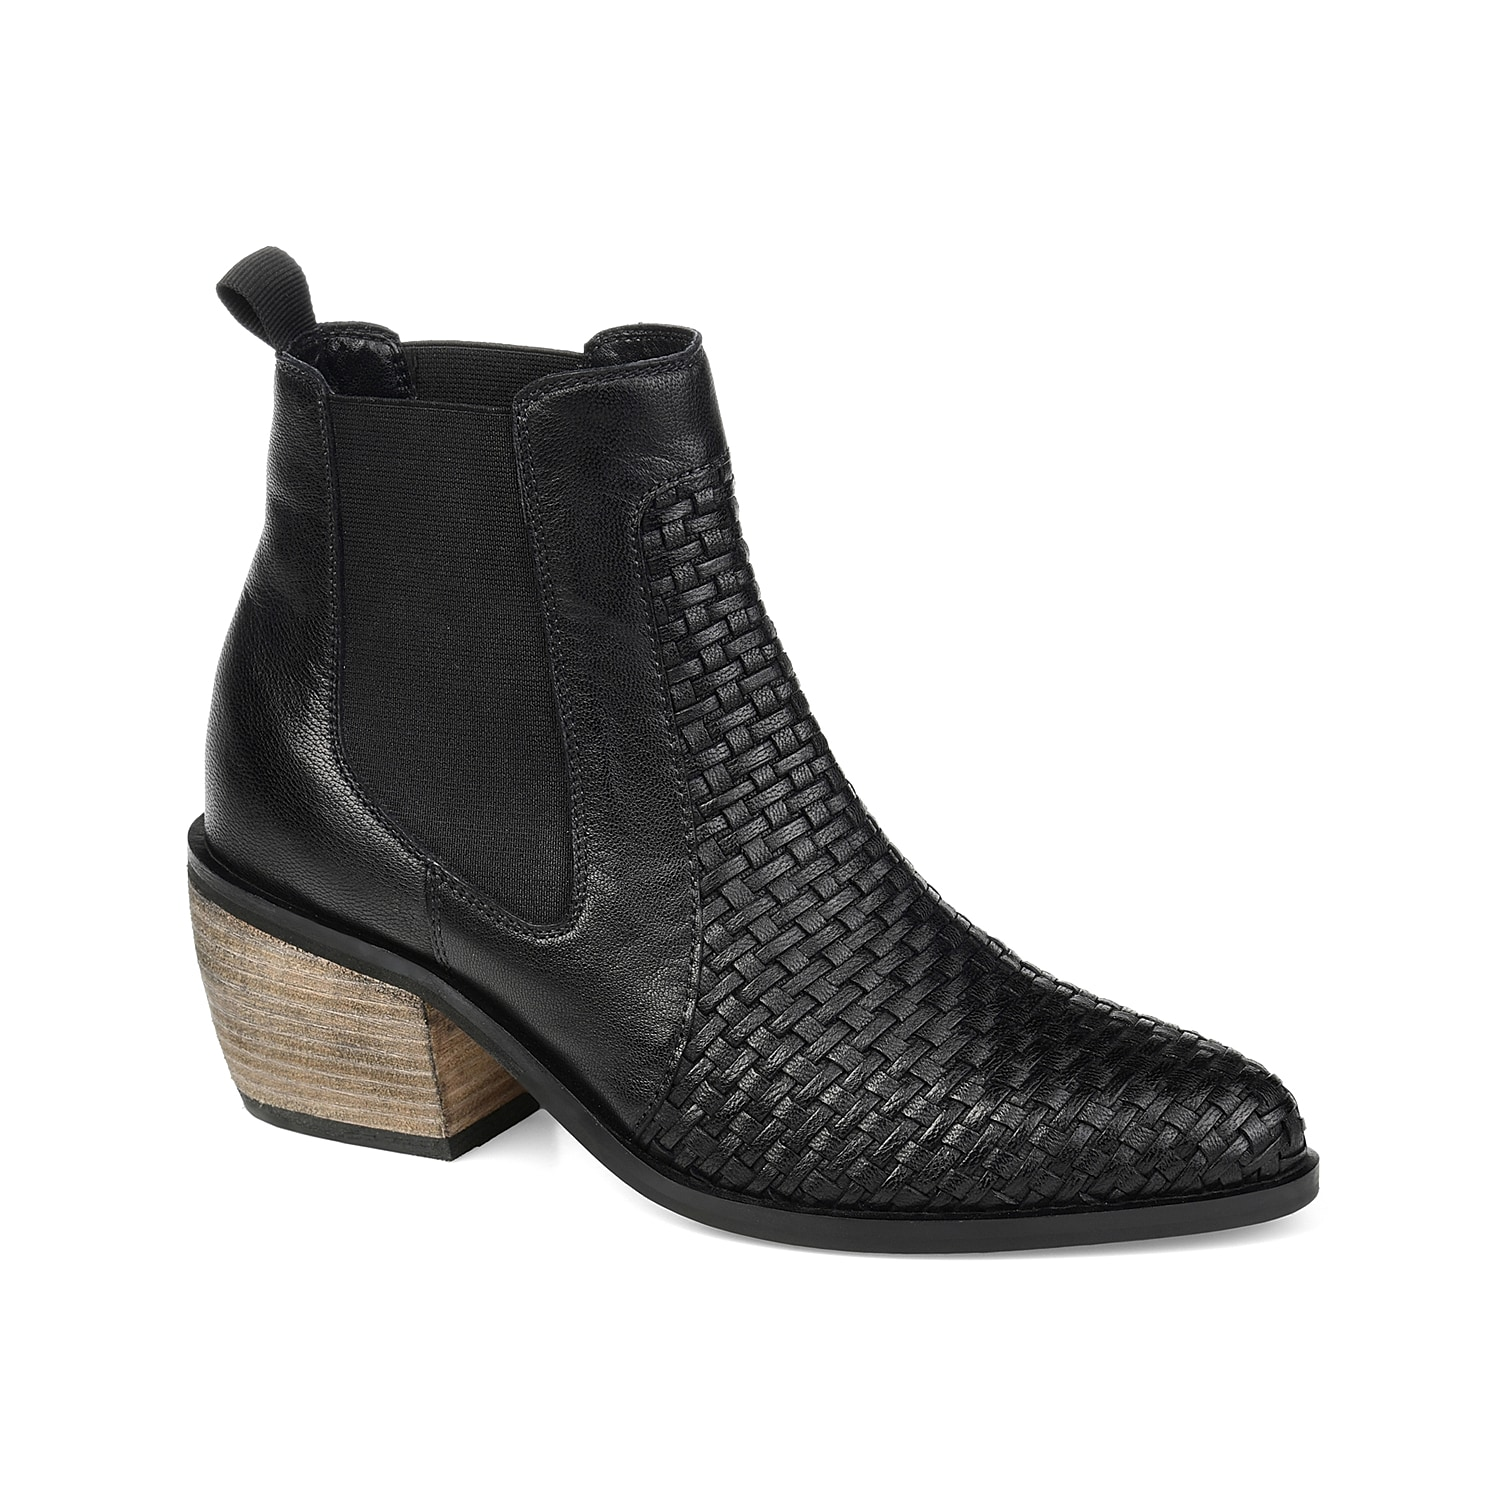 The Skyller bootie from Journee Signature rocks the perfect balance of modern and rustic style. This Chelsea boot features woven leather and chunky block heel for easy styling.Click here for Boot Measuring Guide.